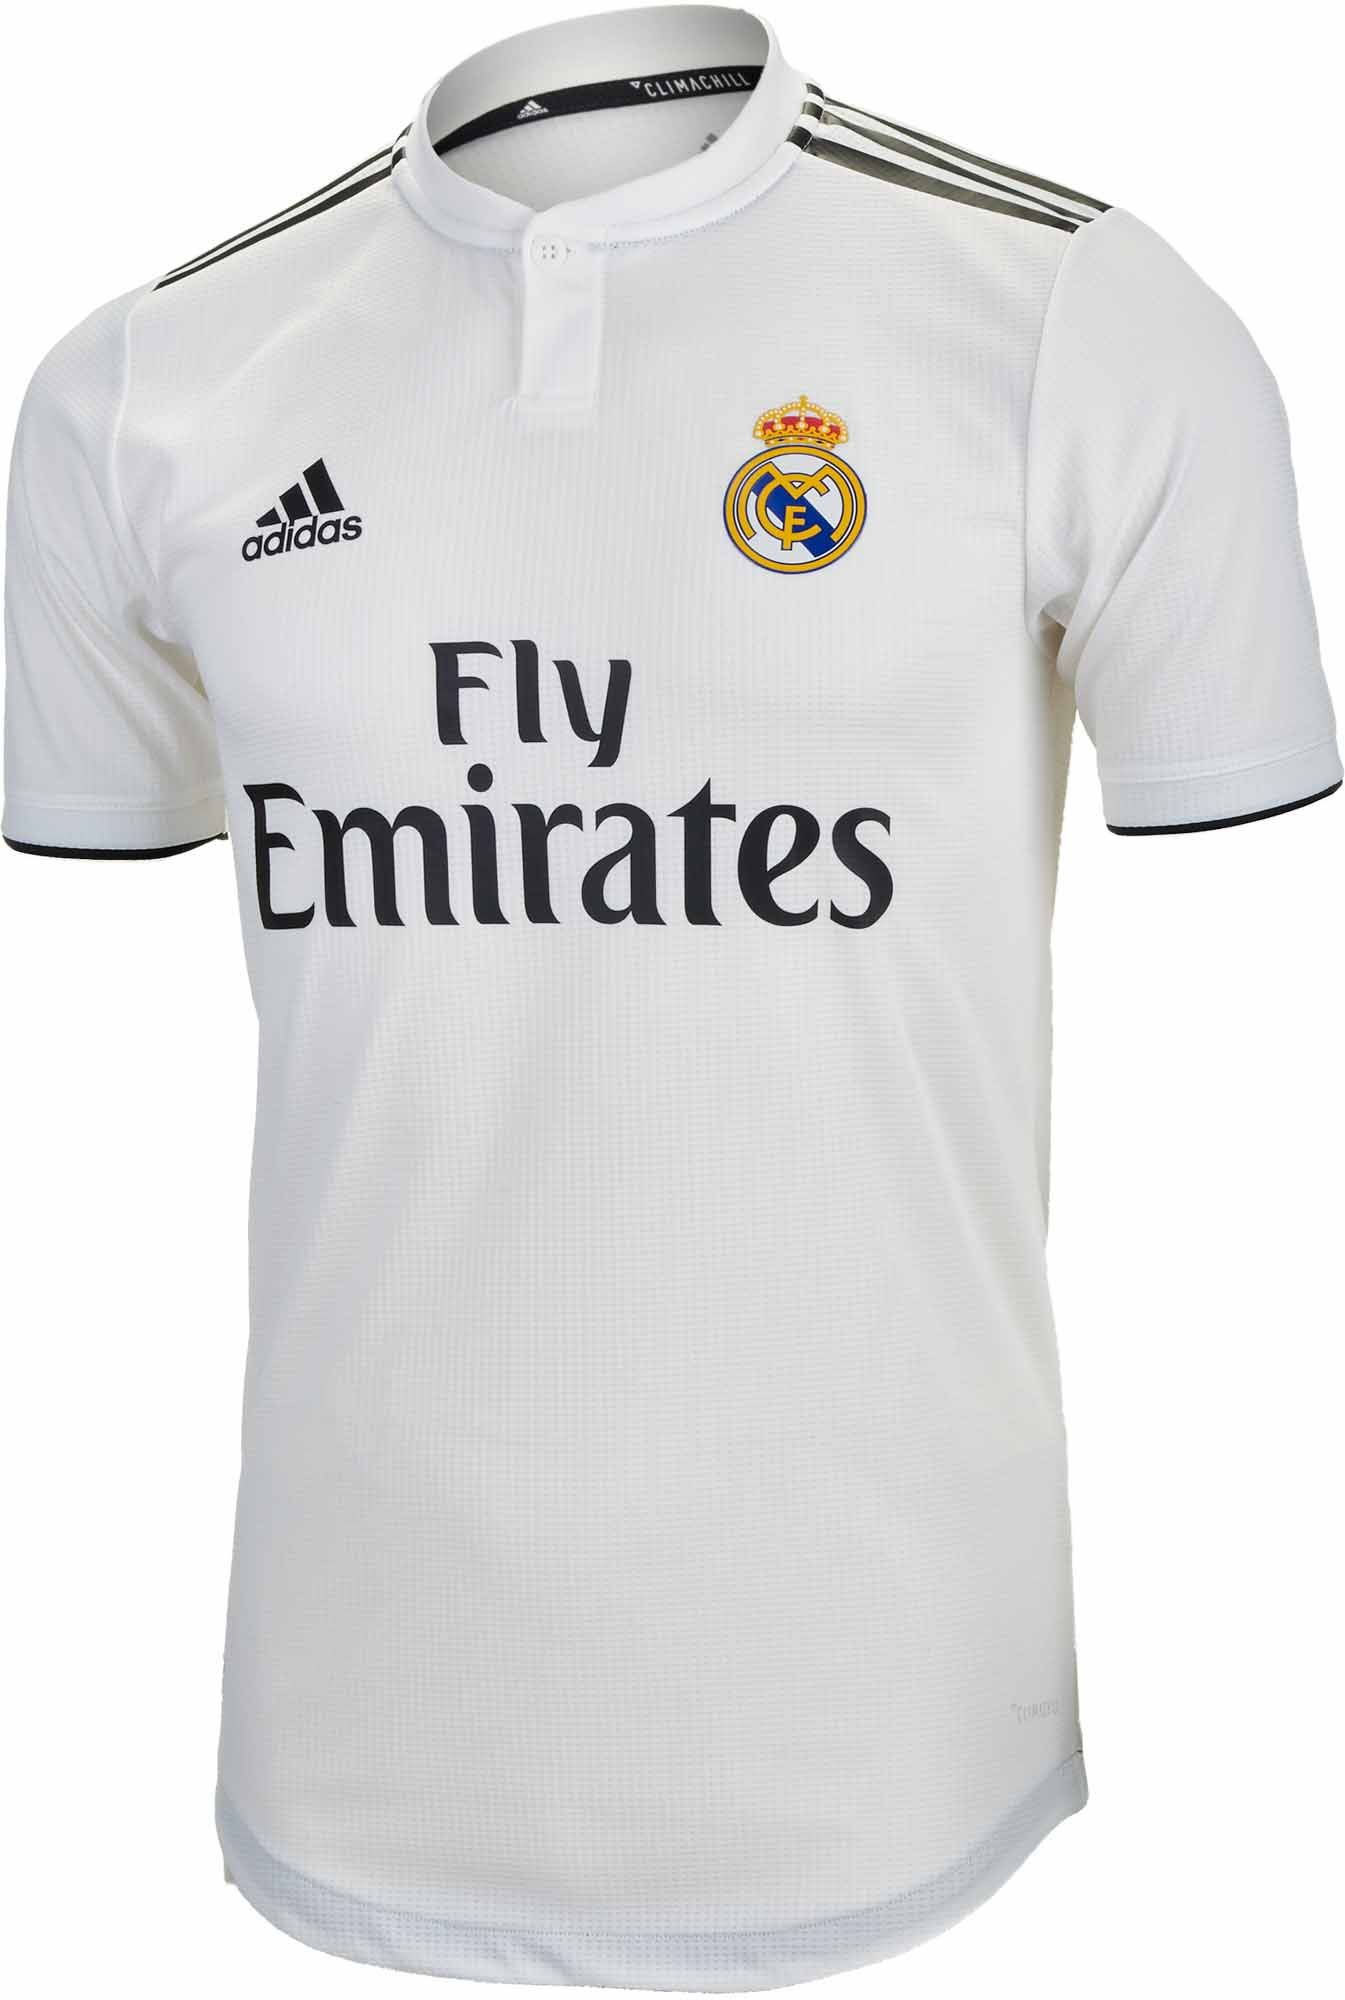 7d663d8fb 2018 19 adidas Real Madrid Authentic Home Jersey. Fresh at www.soccerpro.com